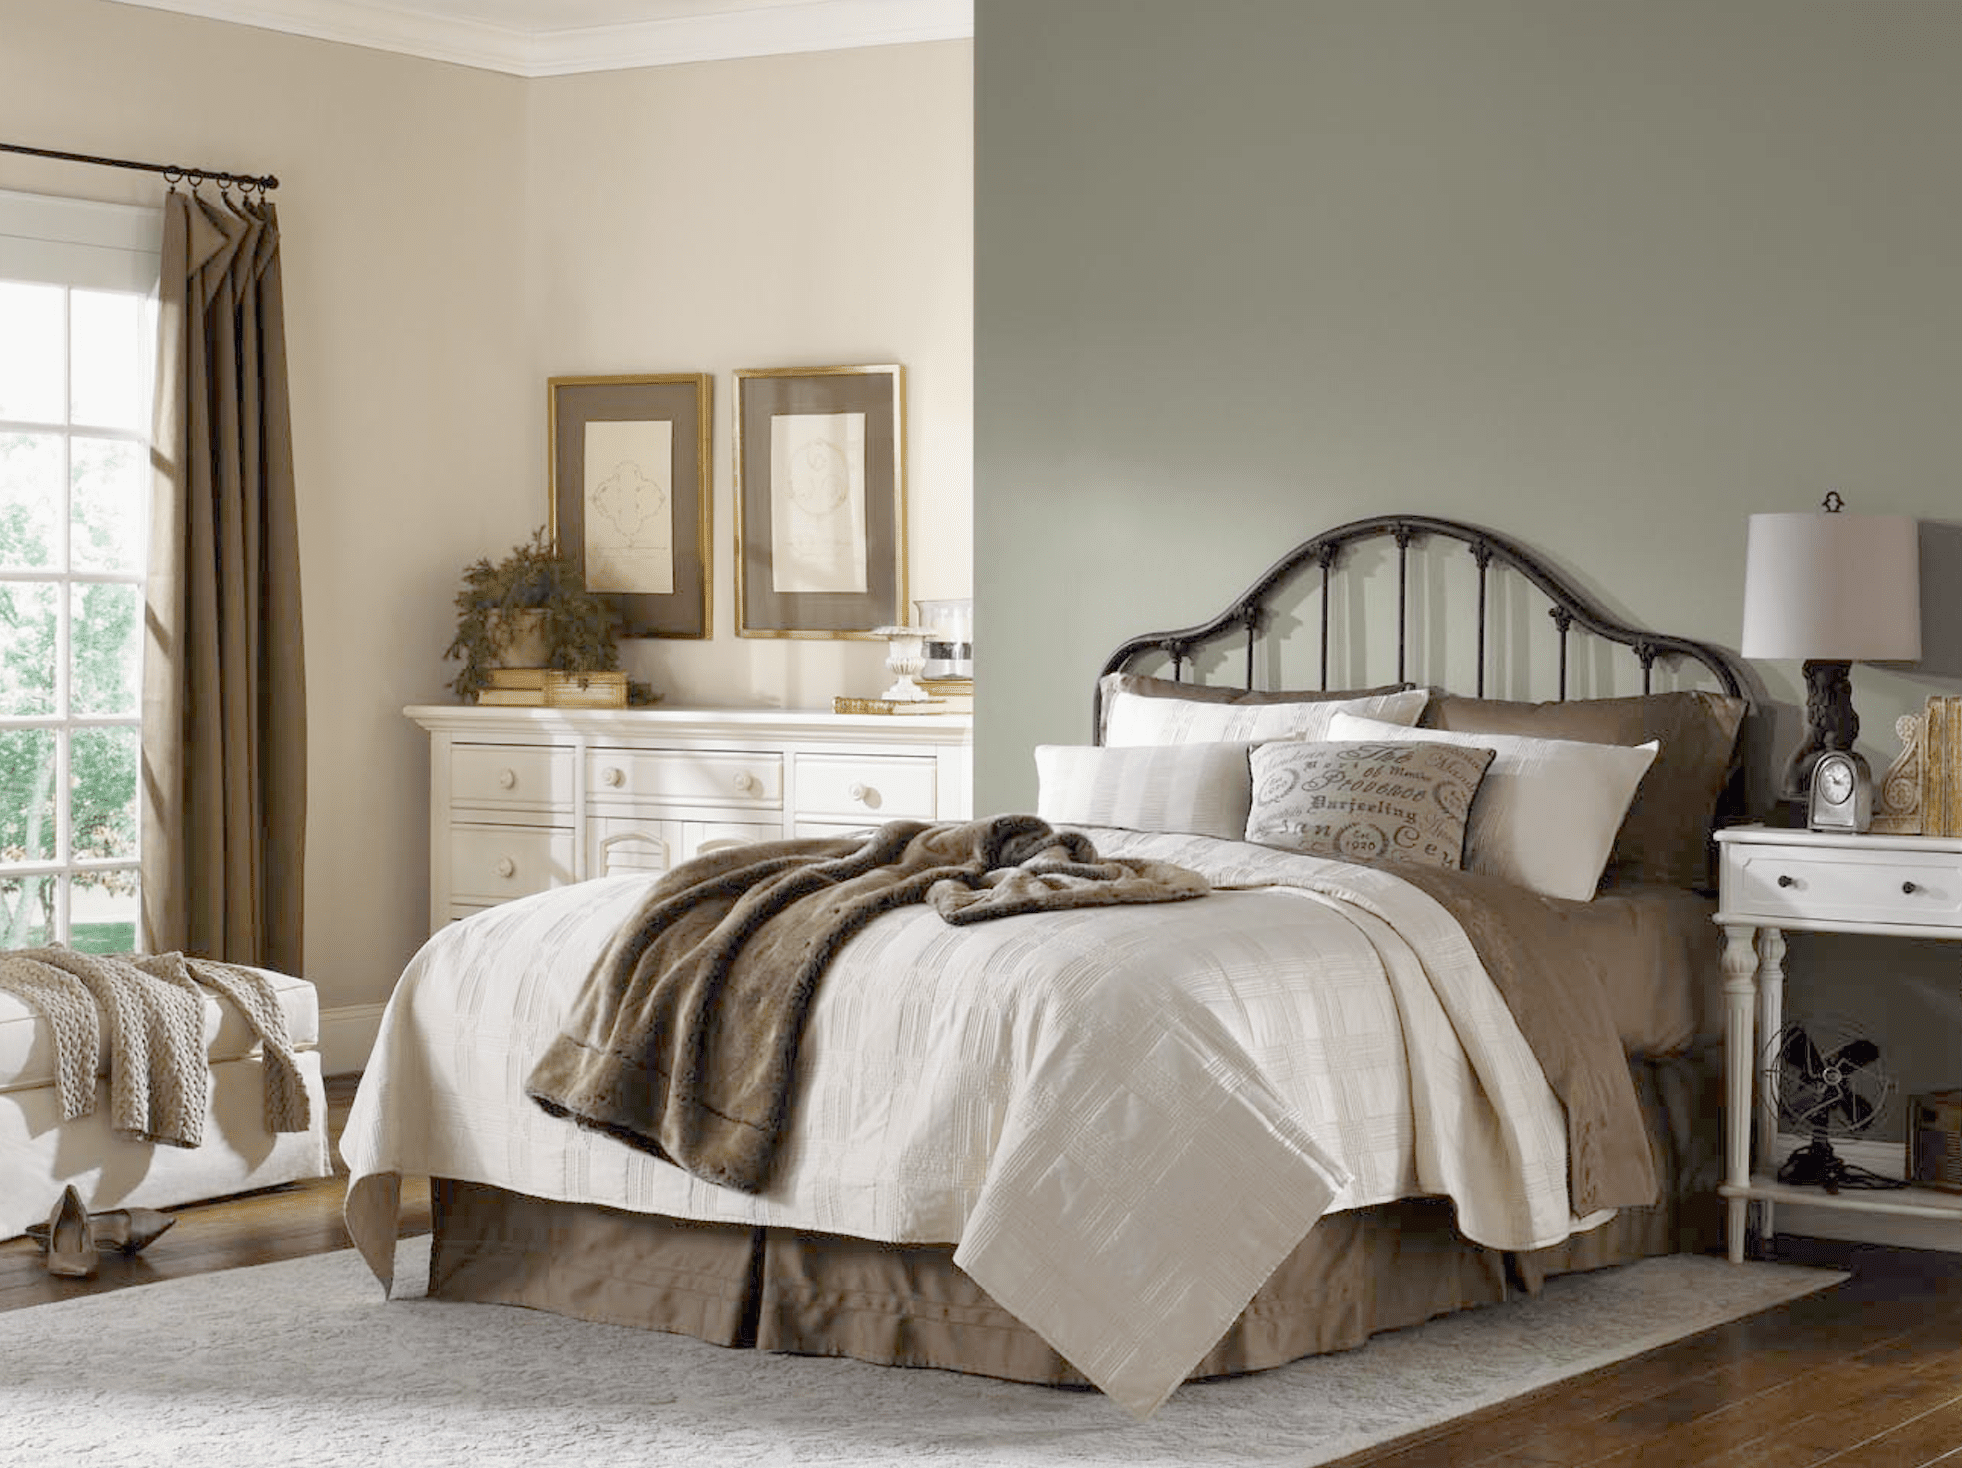 A bedroom painted with Sherwin-Williams Escape Gray